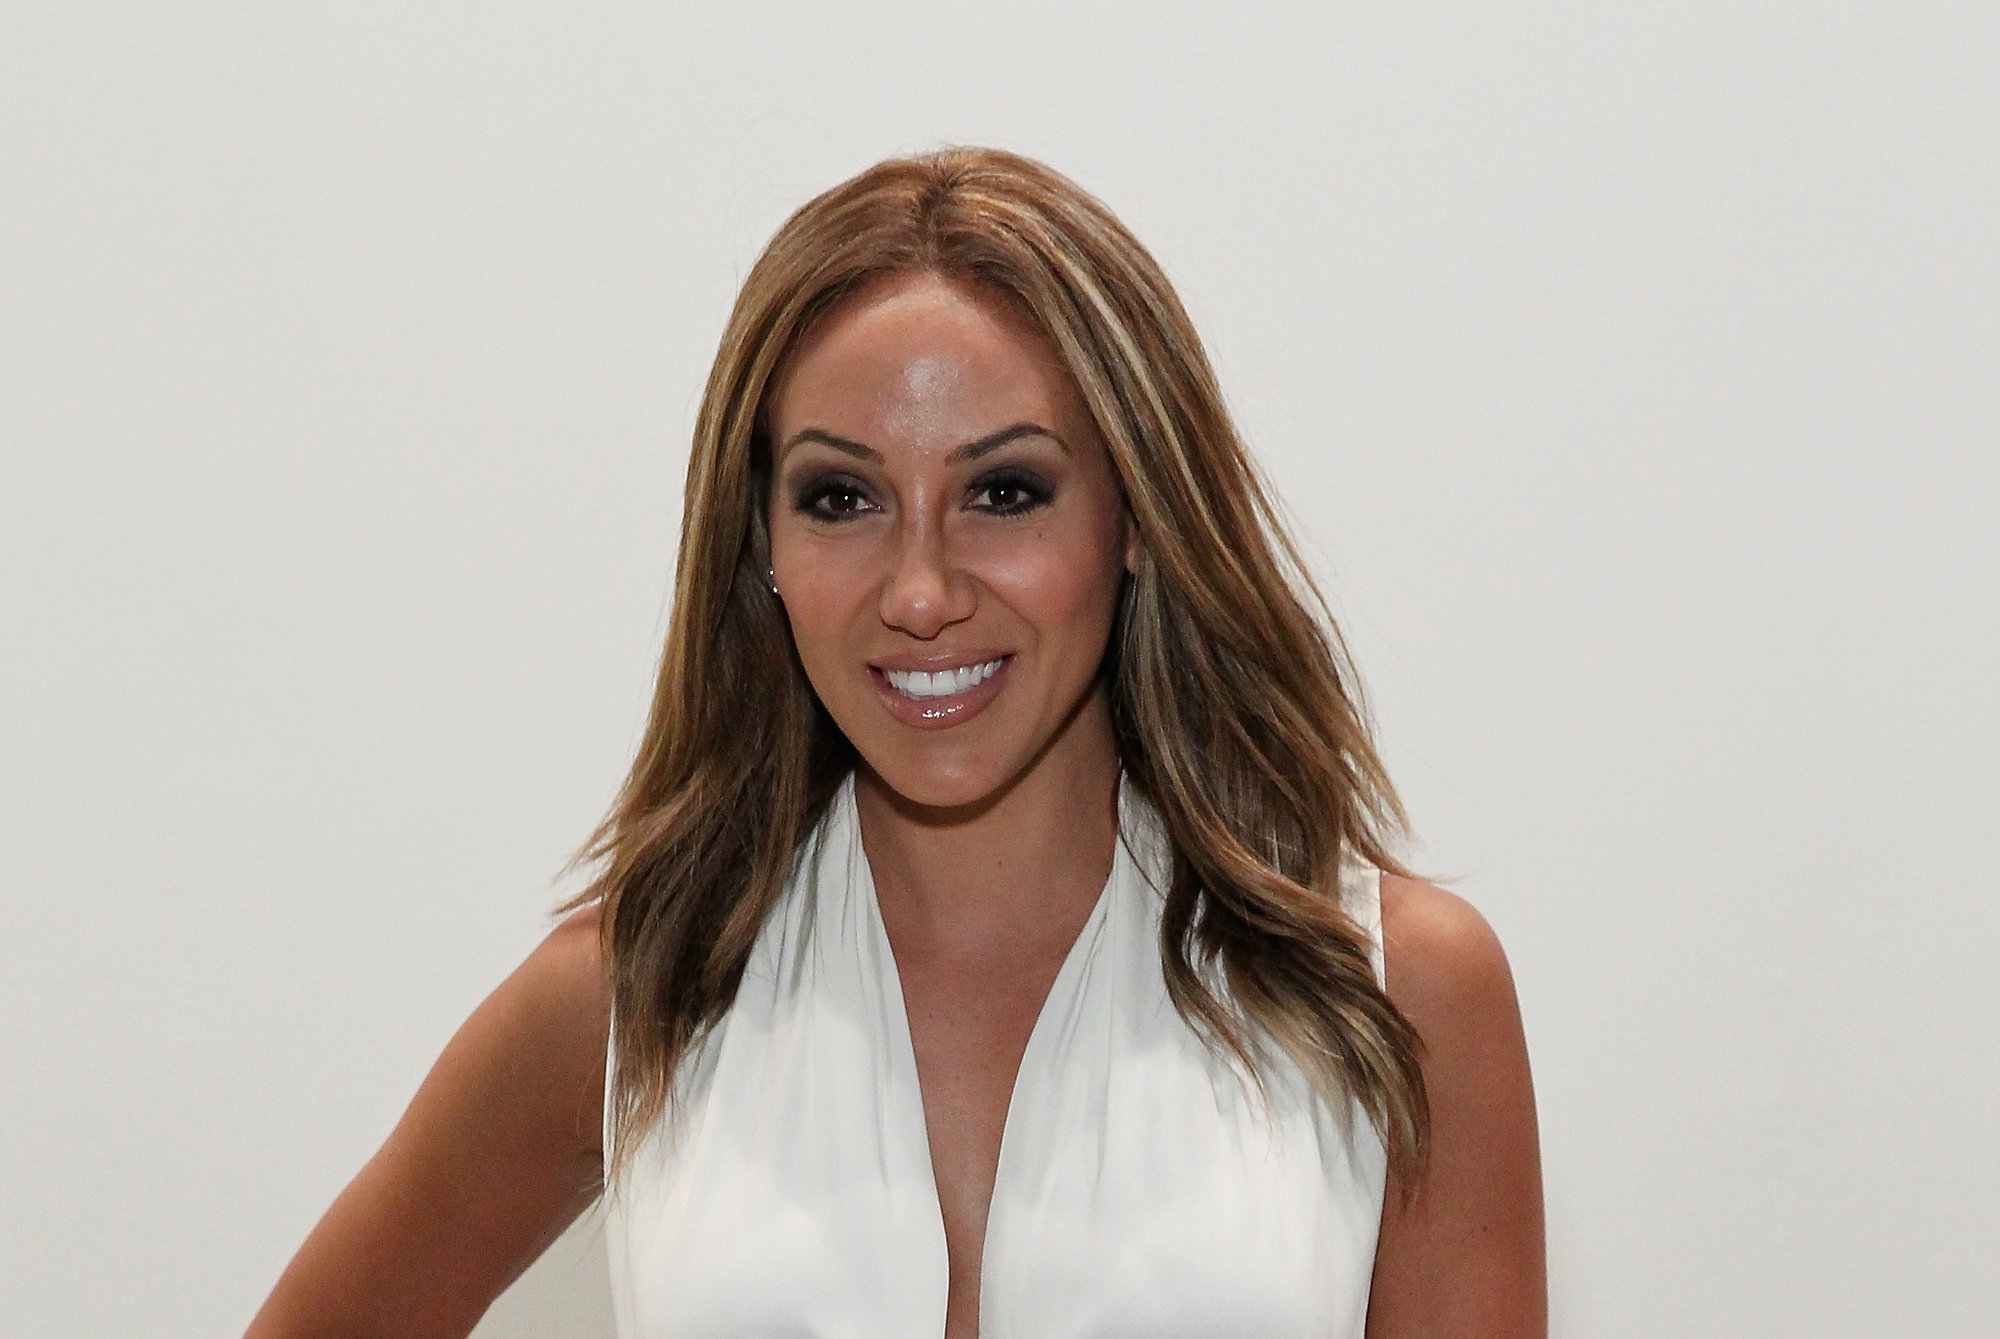 melissa-gorga-rhonj-fake-chanel-lawsuit-envyjpg-5f1b23e4a518dbf5